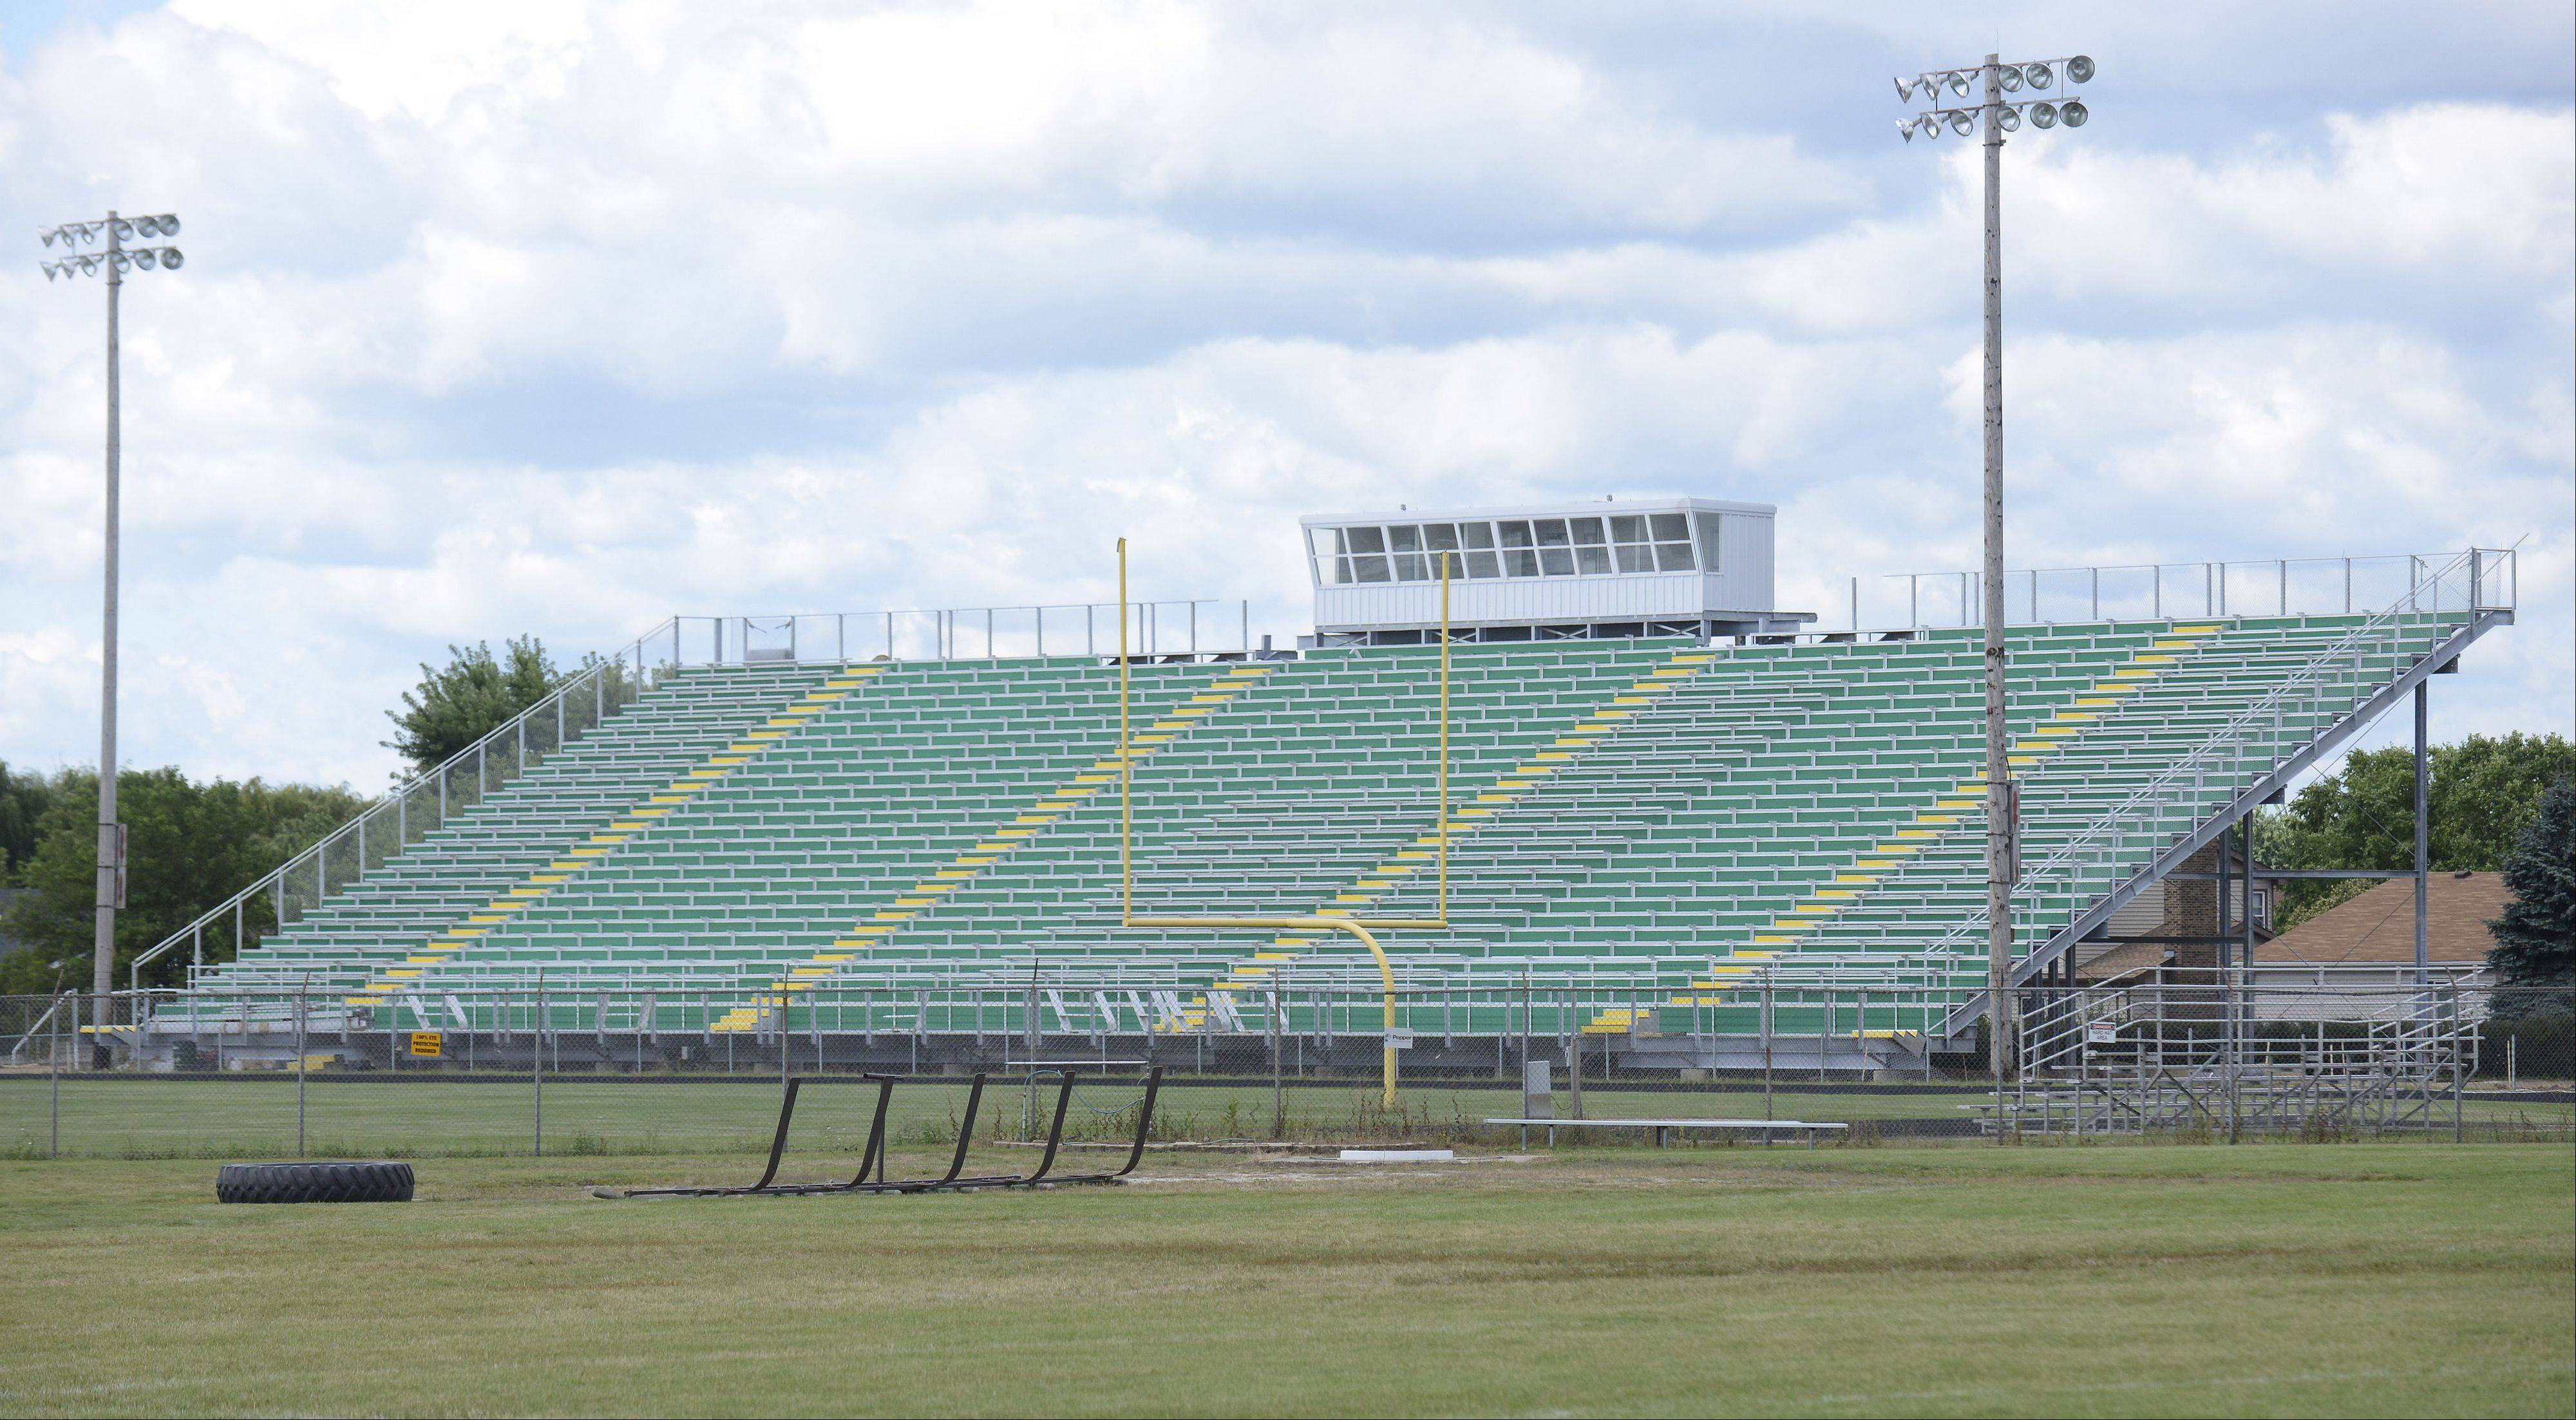 Crystal Lake South High School installed new bleachers on the west side of the varsity football field, and the city this week issued a stop-work order after a lawsuit was filed.